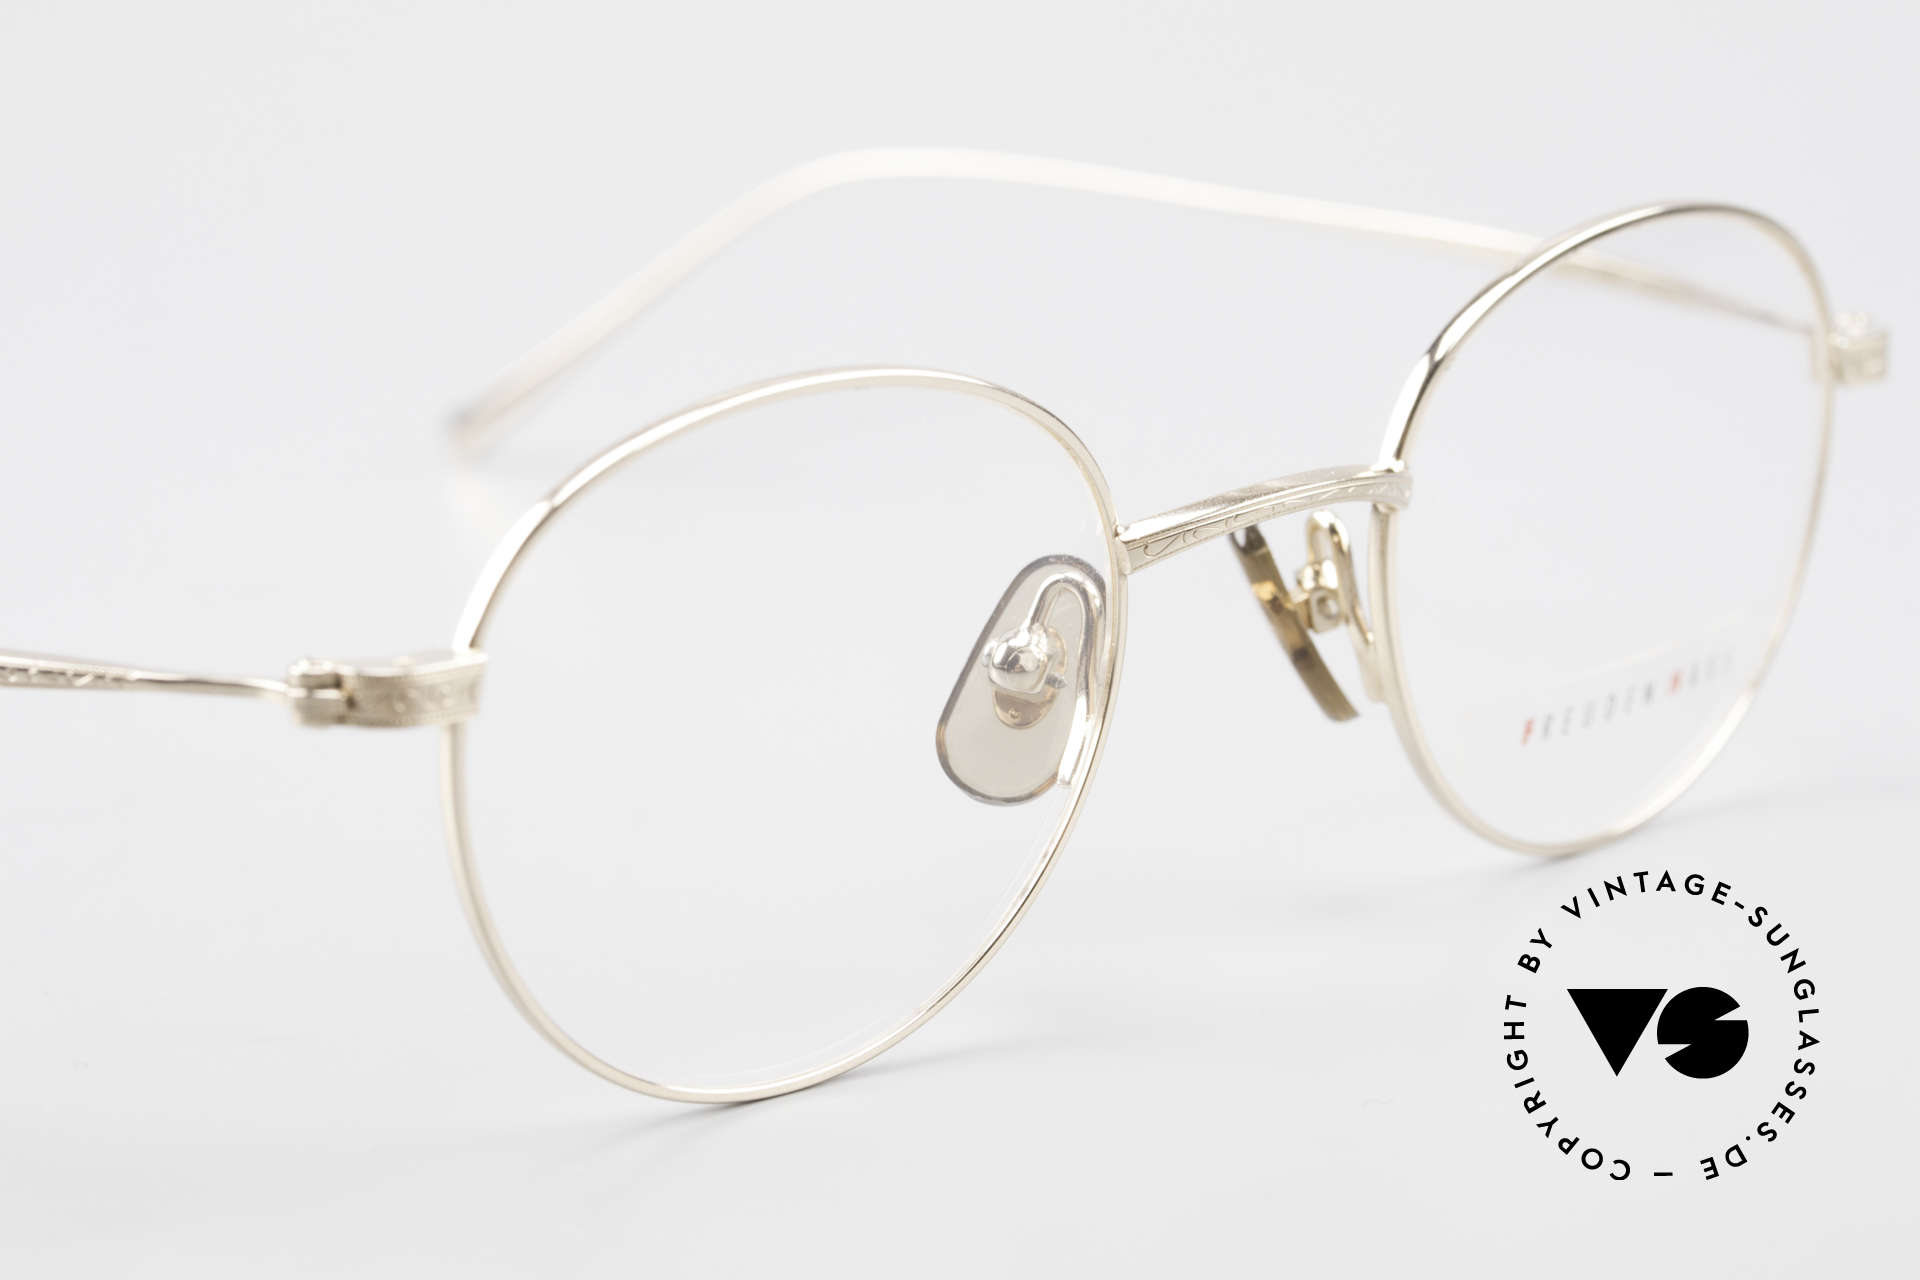 Freudenhaus Garland Small Round Designer Frame, NO RETRO fashion, but an old Original from the 90's, Made for Men and Women